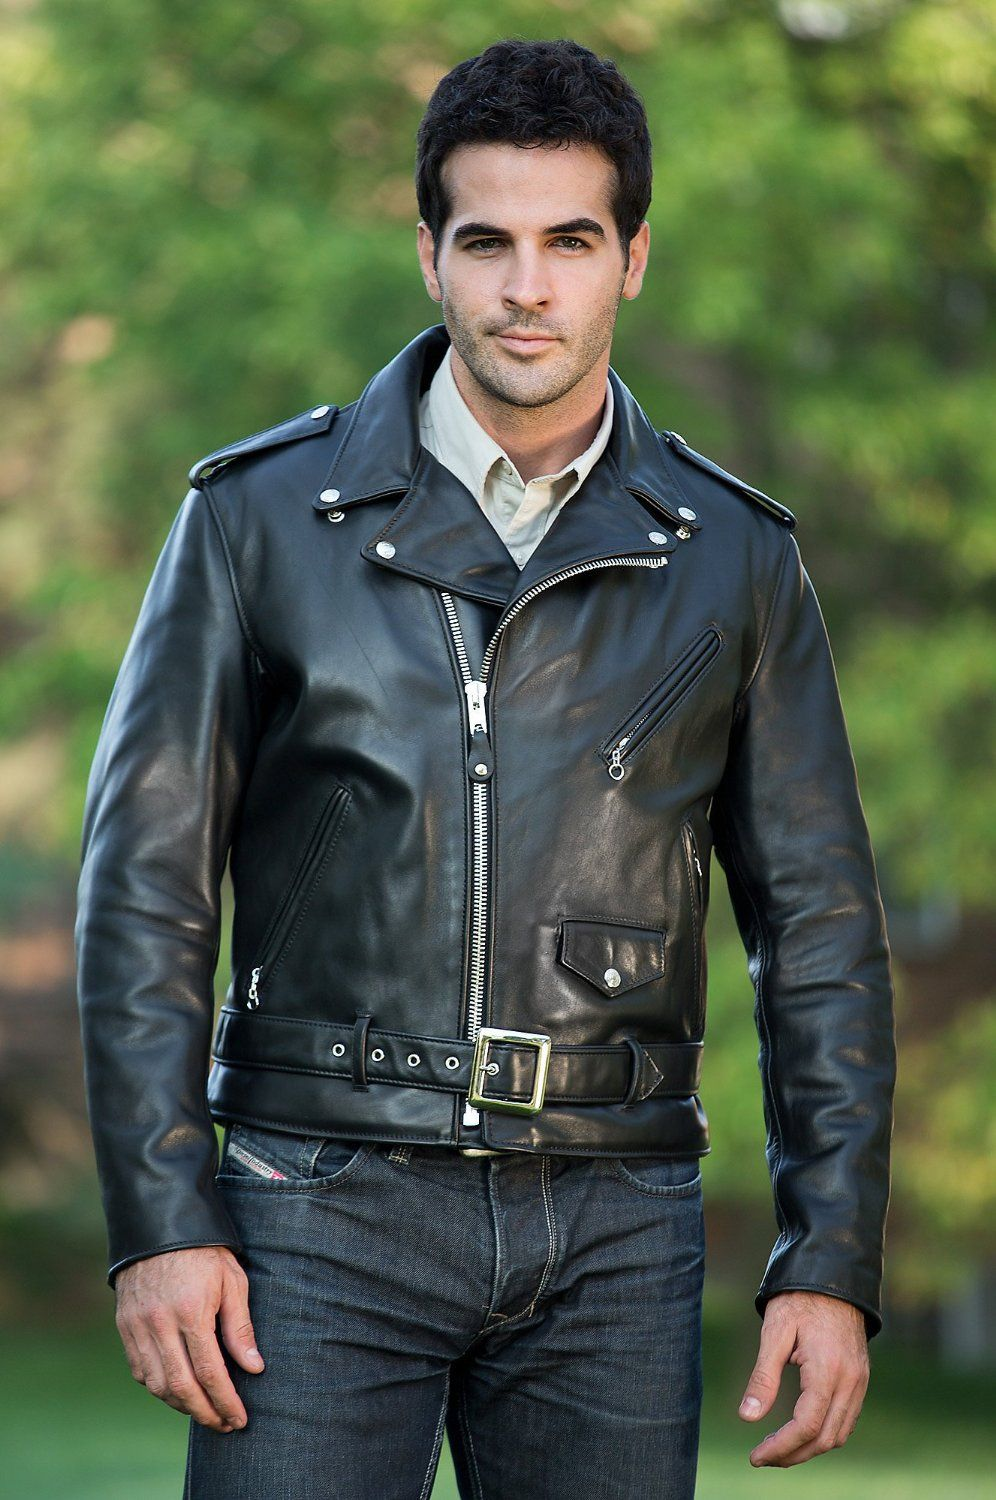 Hot guy in a black biker leather jacket http